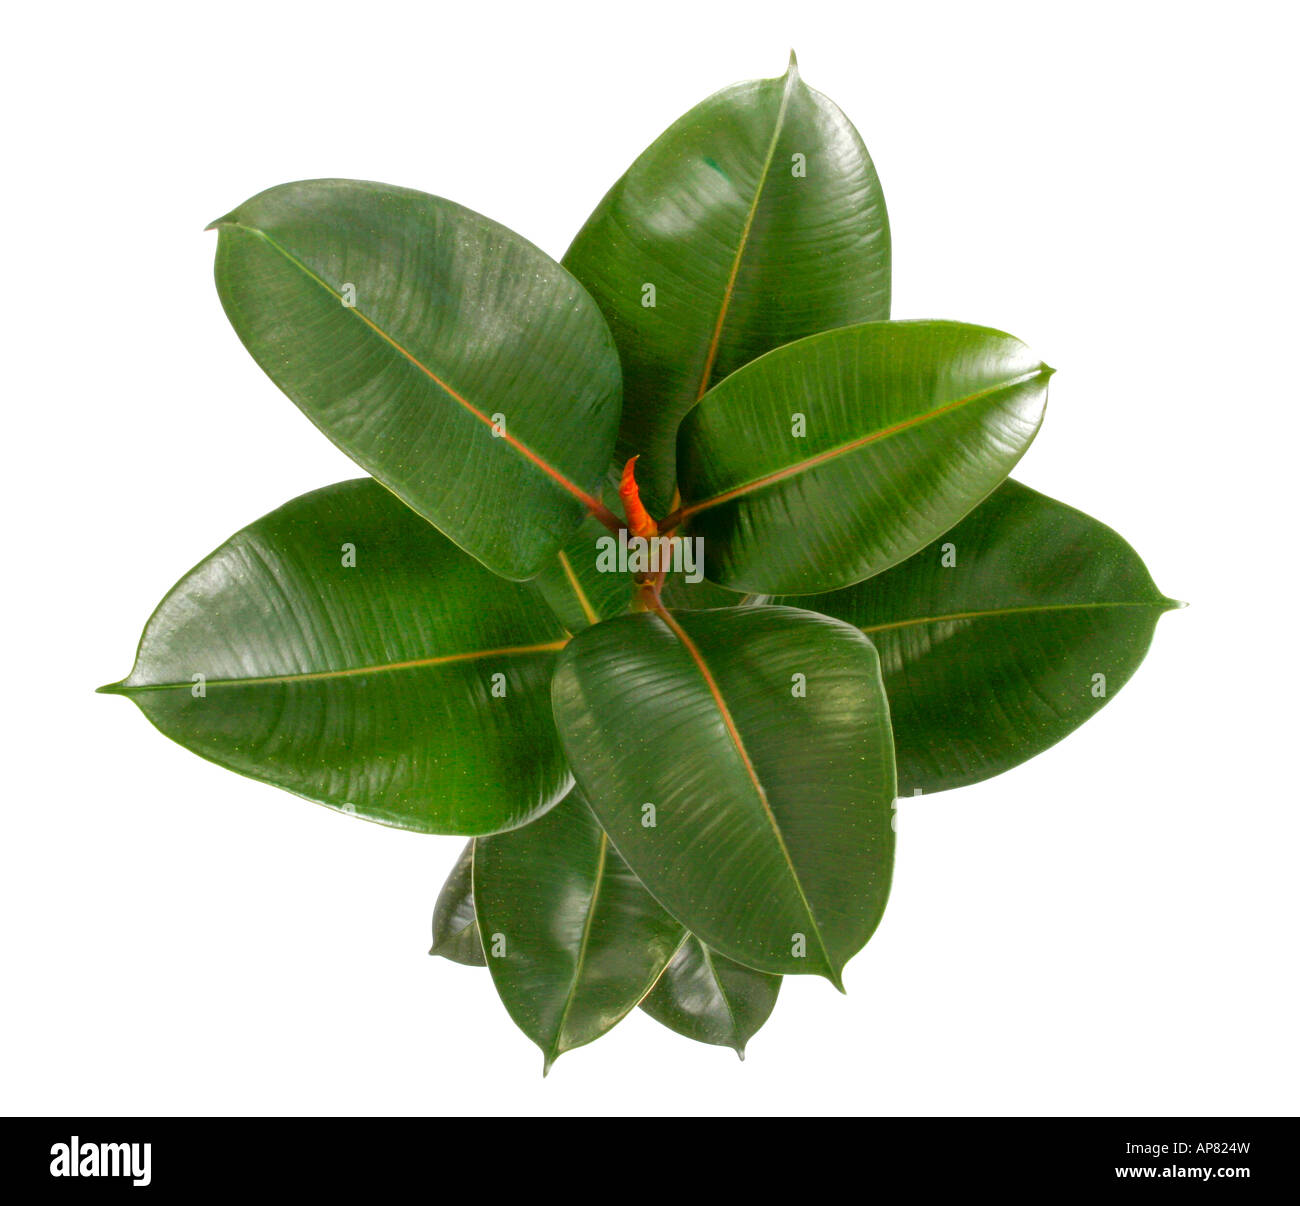 Hong Kong House Indian Rubber Tree Rubber Plant Ficus Elastica Potted